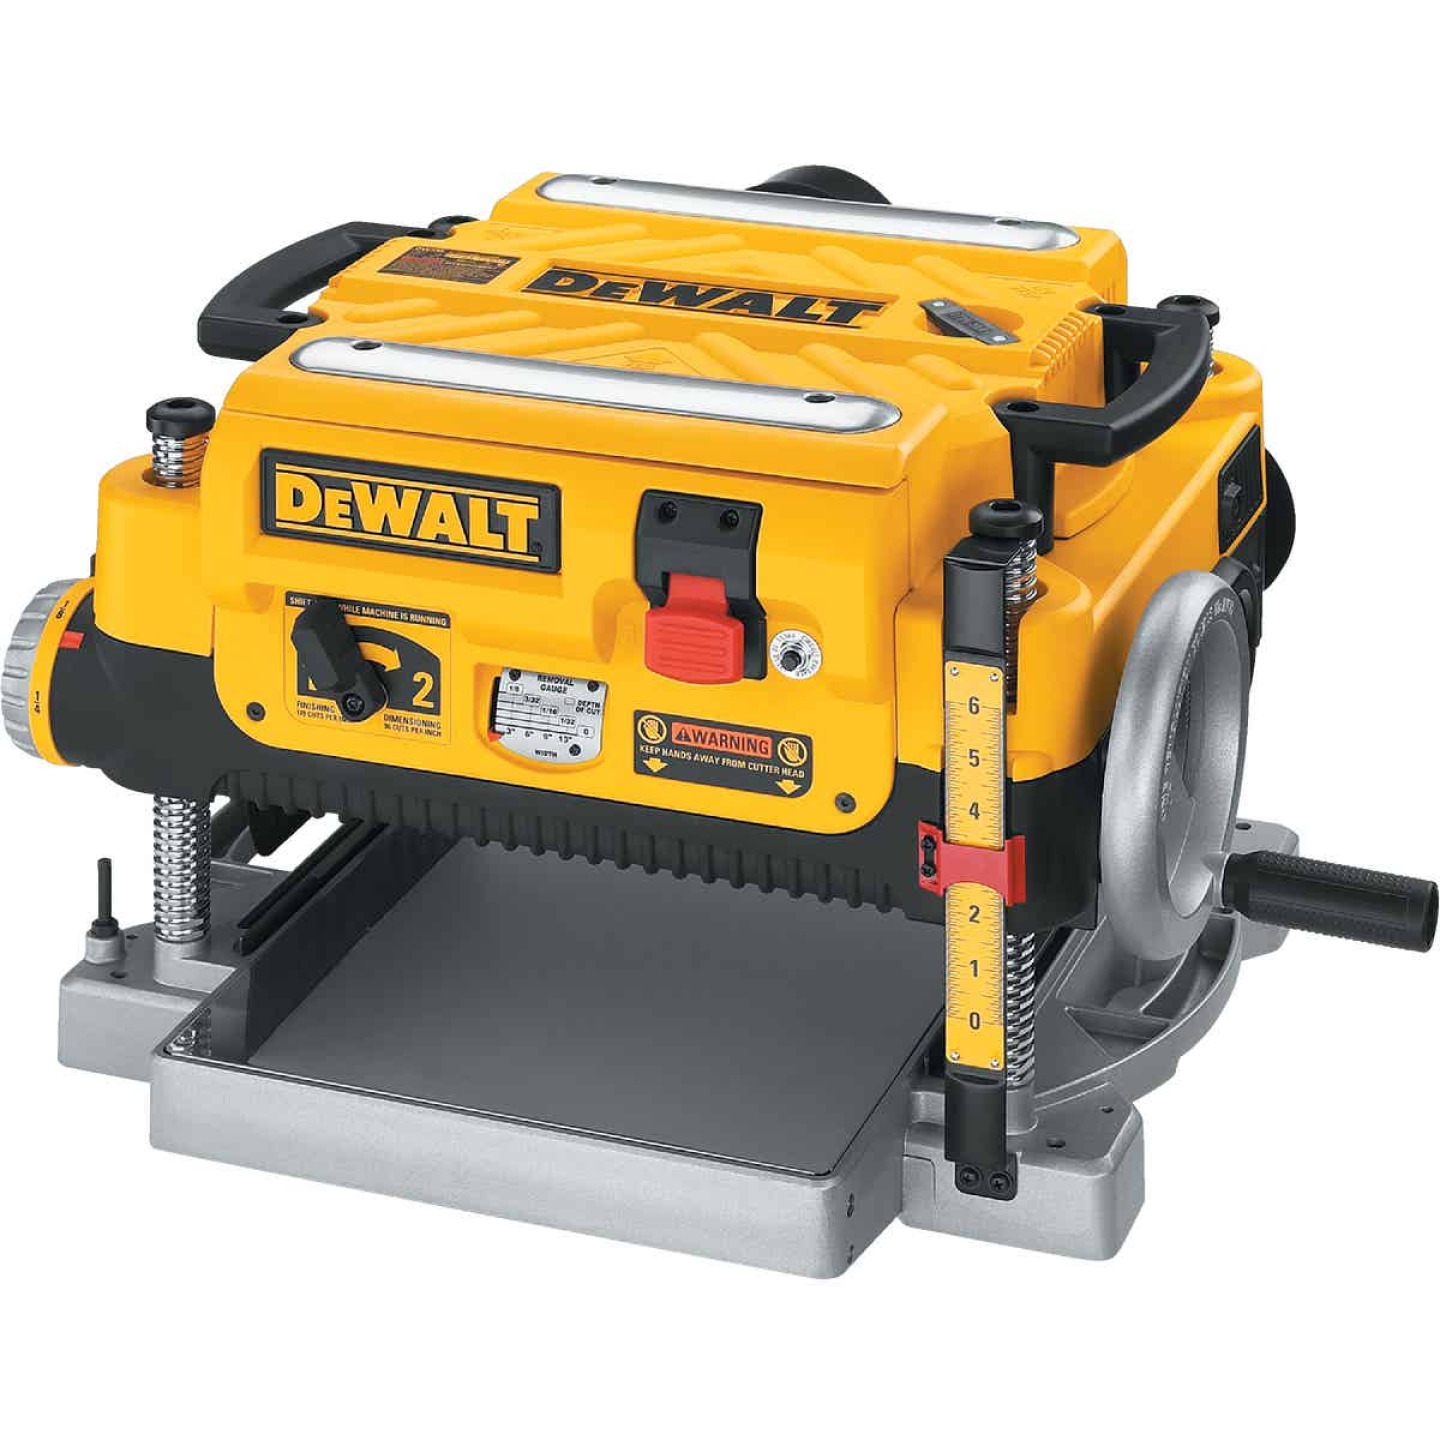 DeWalt 13 In. Three Knife Two-Speed Portable Planer Image 6